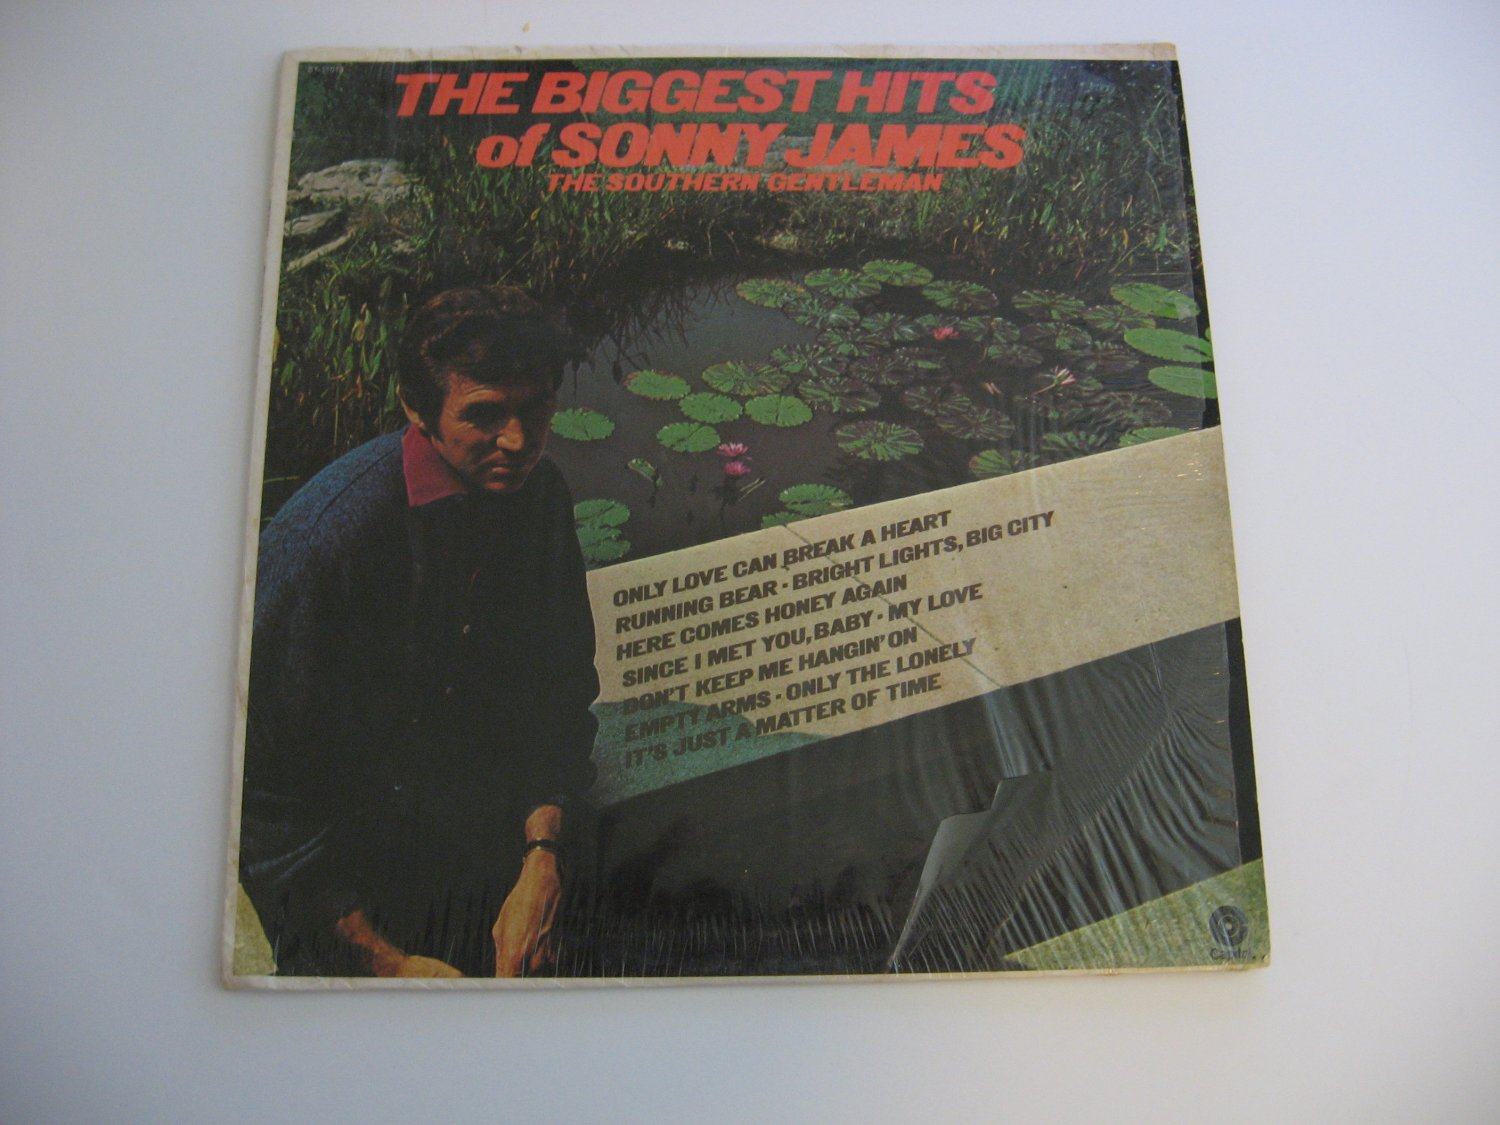 Sonny James - The Biggest Hits Of Sonny James - 1972  (Record)